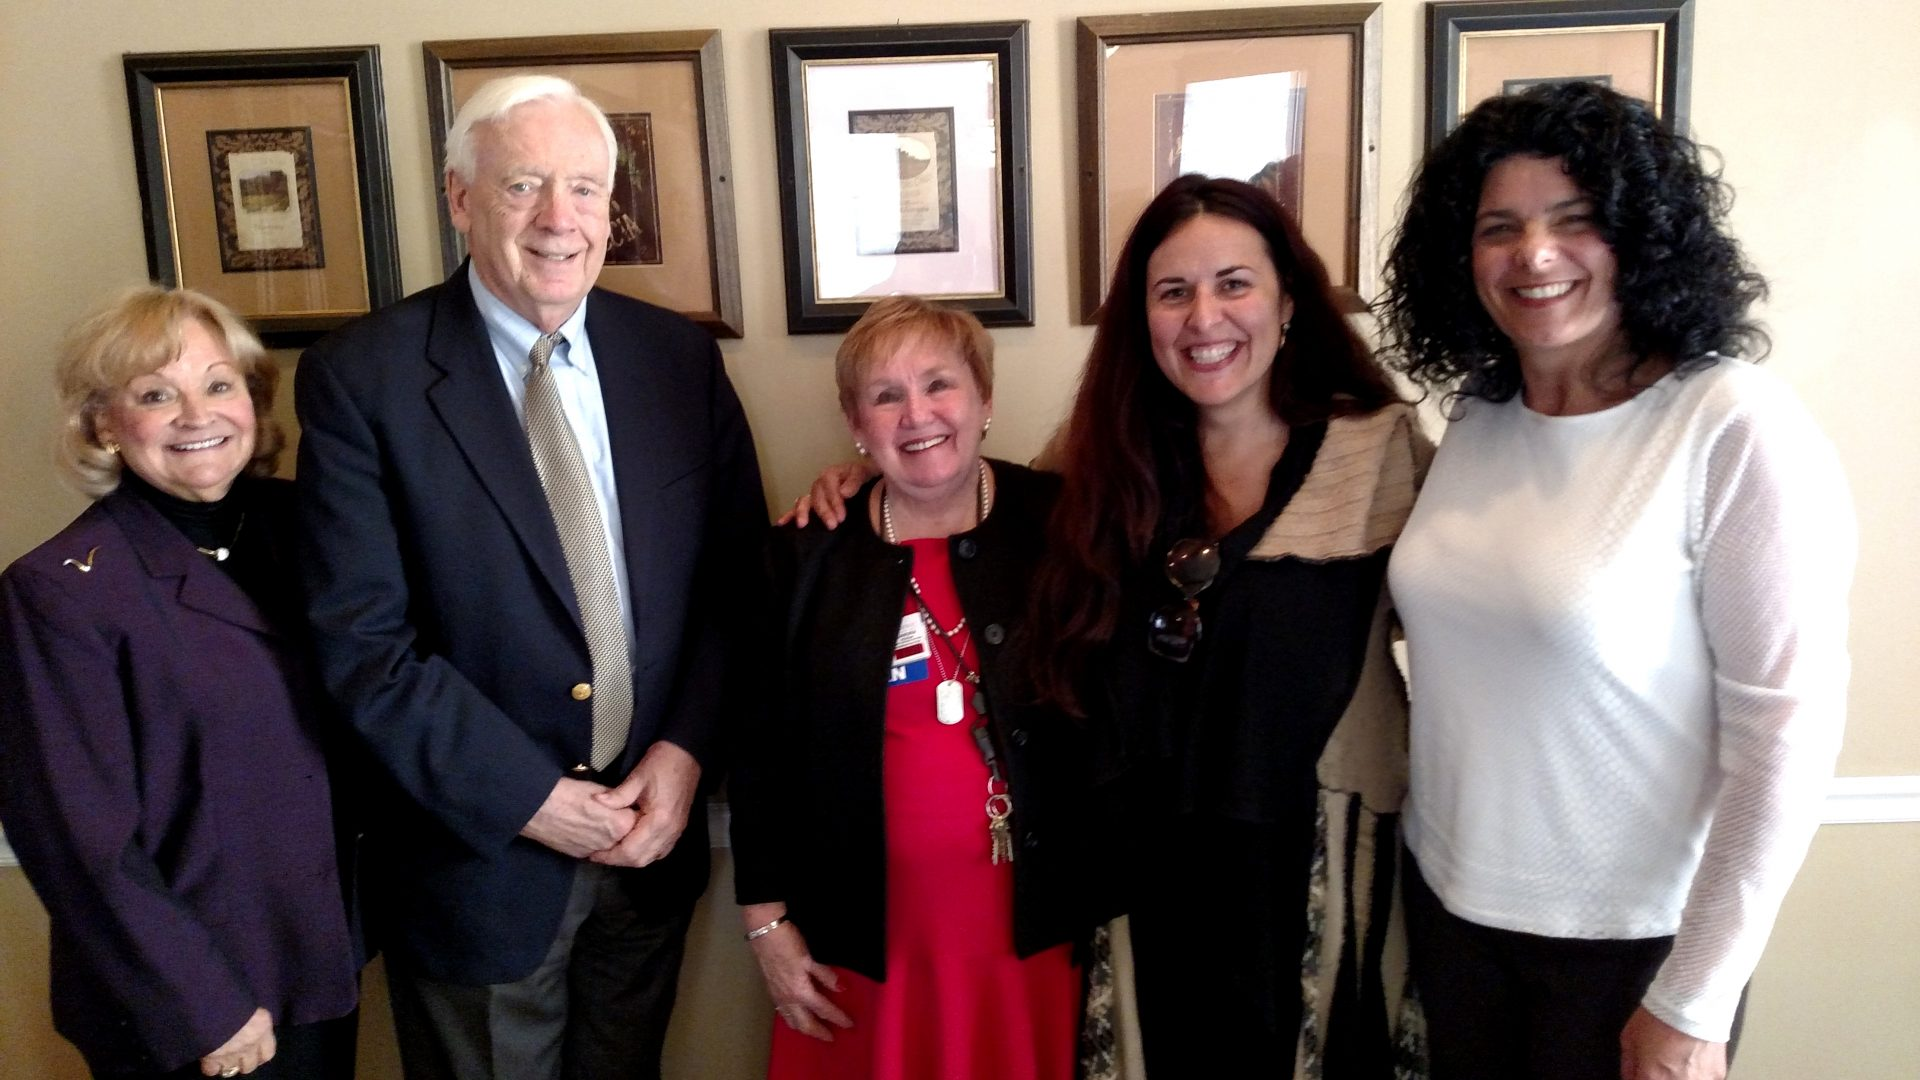 L-R: Beverly and Frank Finnegan, Sandra Horan RN,BSN, Phoenicia International Festival of the Voice Chief Executive Director Maria Todaro and Tulip Ball Chairwoman Marisa Perez-Rogers. Photo provided